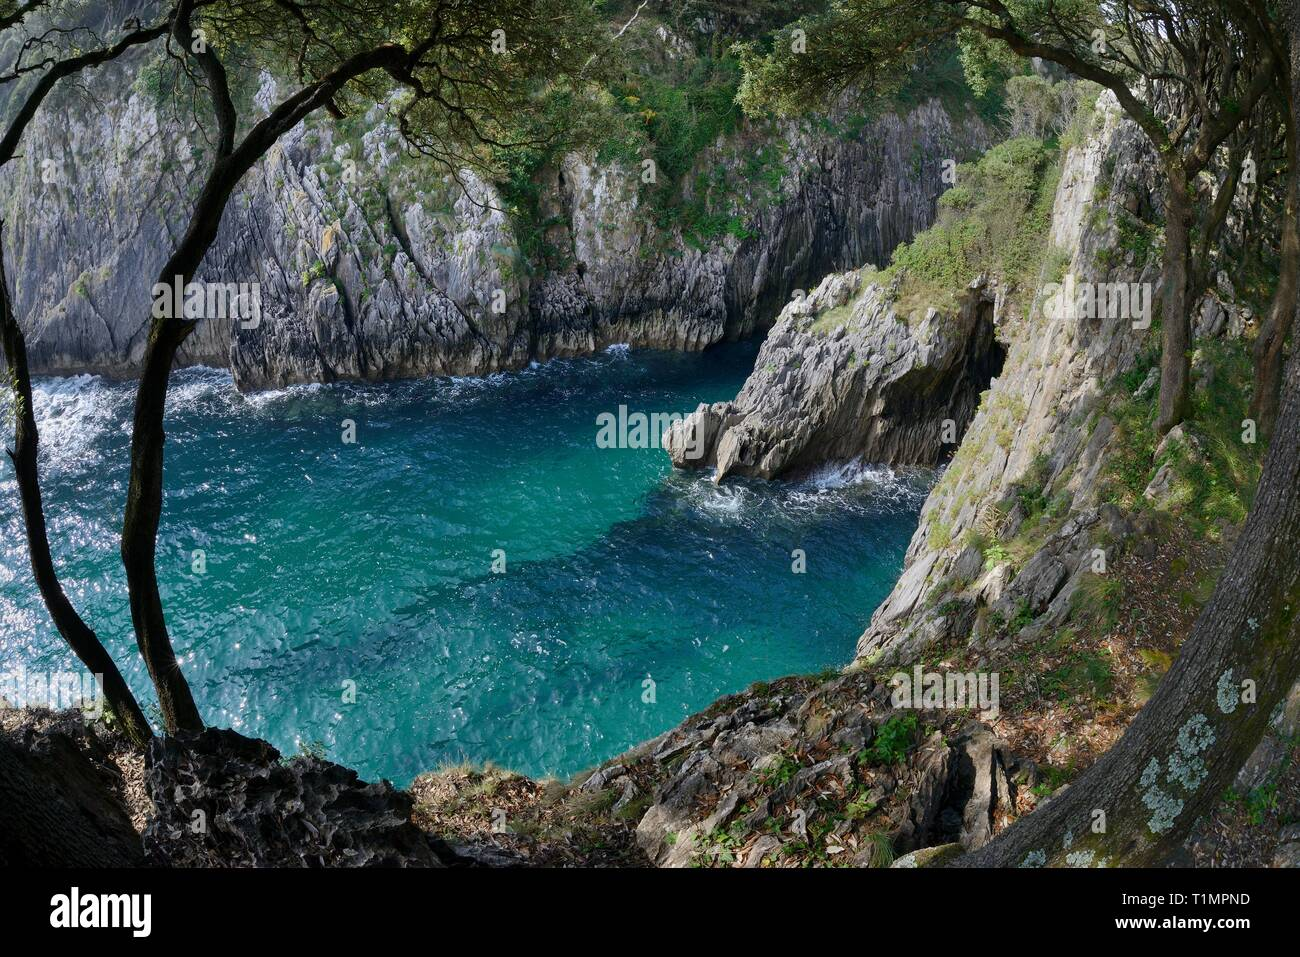 Moral Cove on Cape Emeterio, overhung with Holm oak trees (Quercus ilex), Pimiango, Asturias, Spain, August 2016. - Stock Image